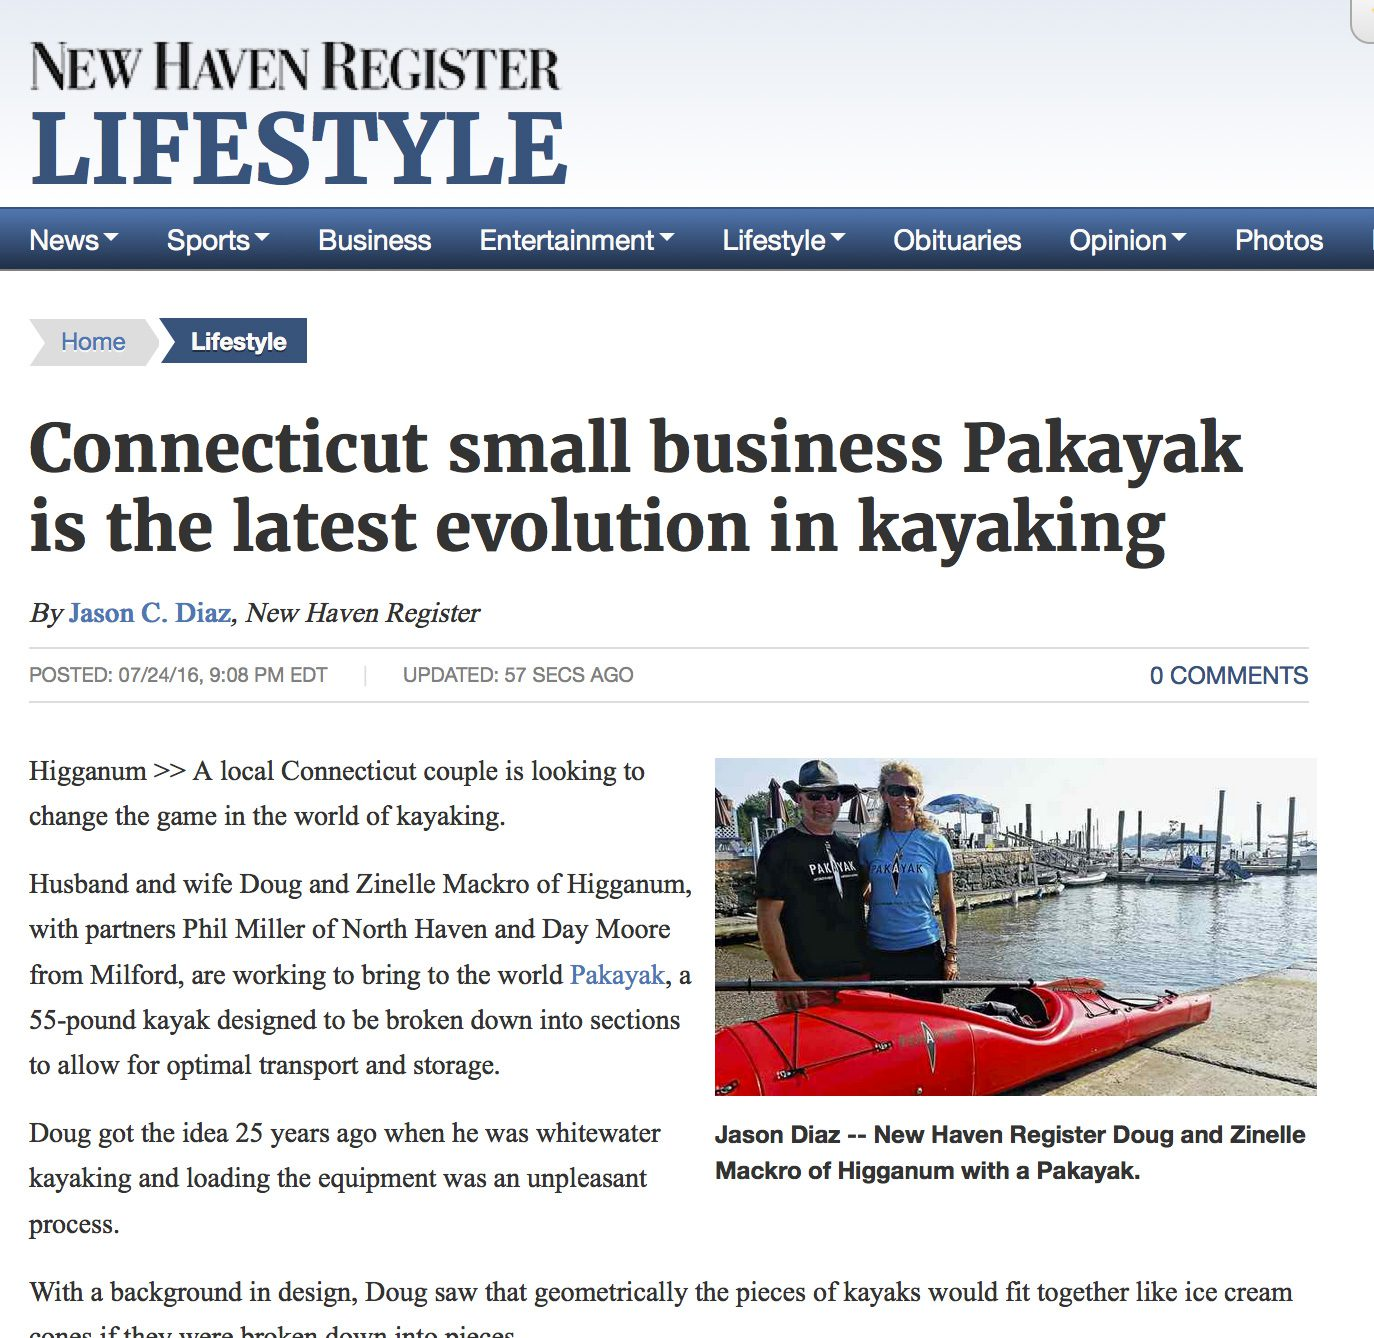 New Haven Register: Connecticut small business Pakayak is the latest evolution in kayaking